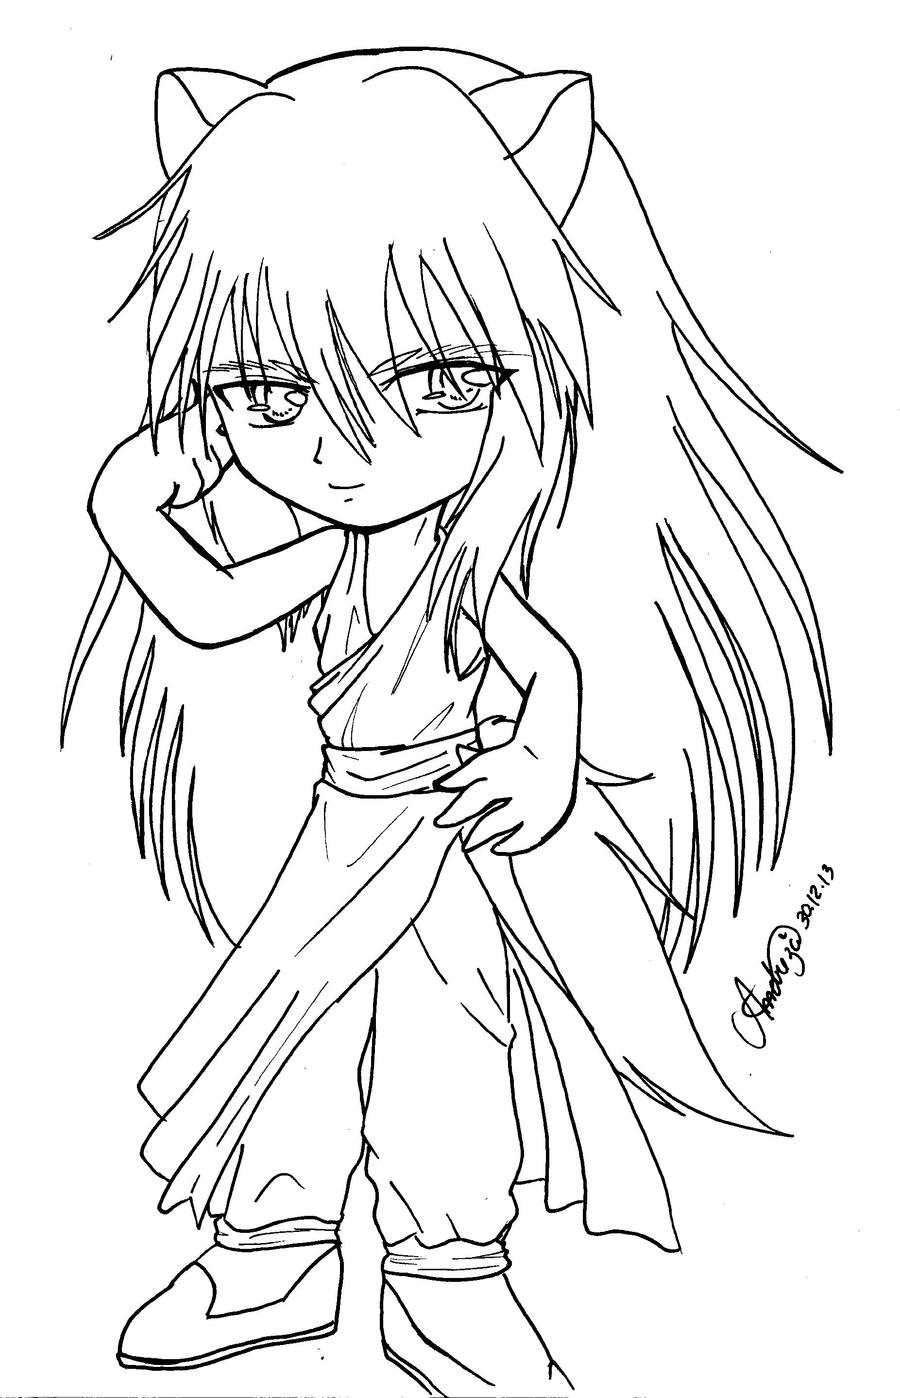 yoko coloring pages - photo#9